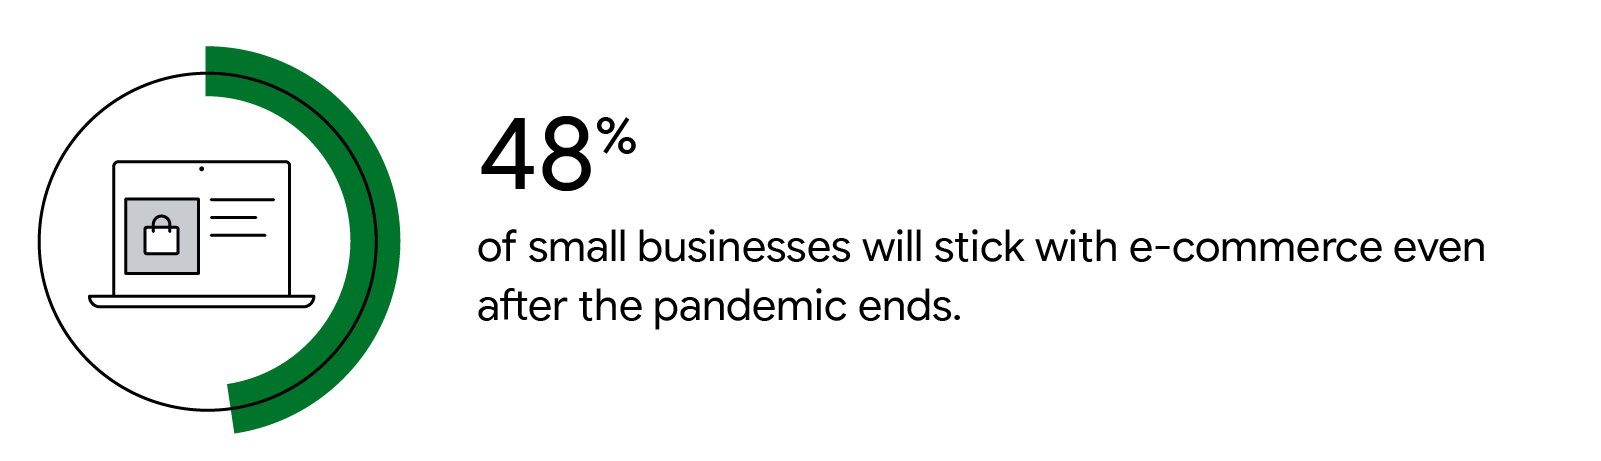 Illustrated icon represents 48% of small businesses will stick with e-commerce even after the pandemic ends.